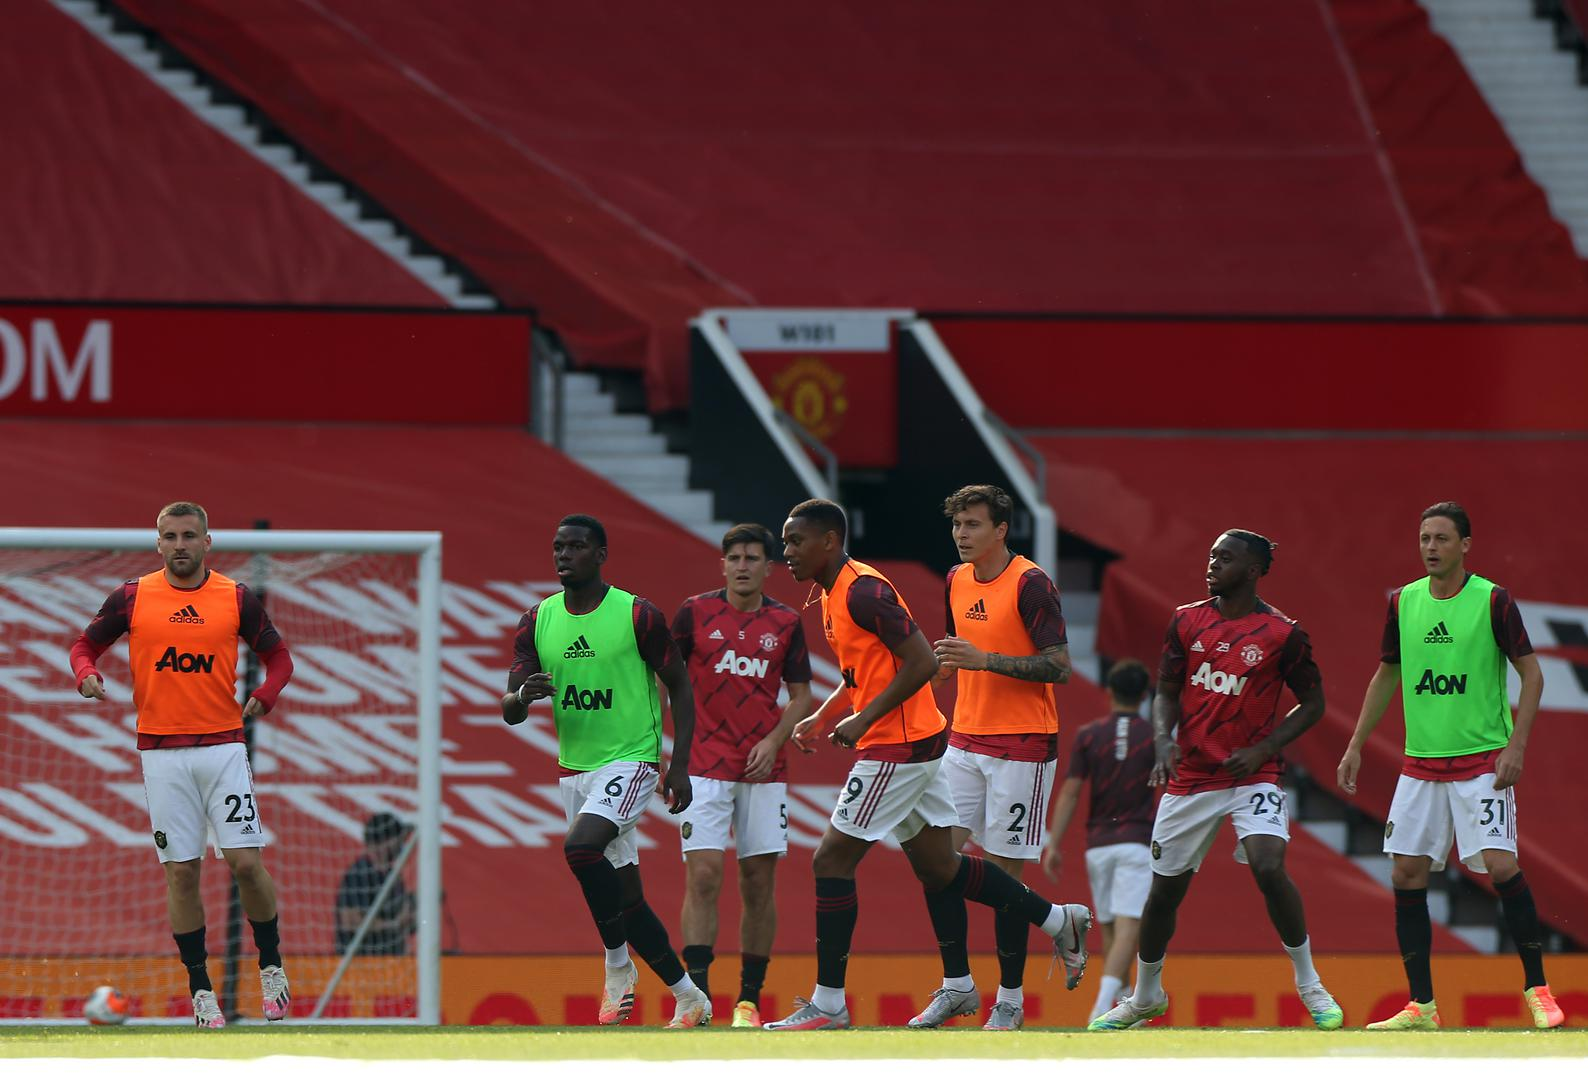 United warm up at Old Trafford.